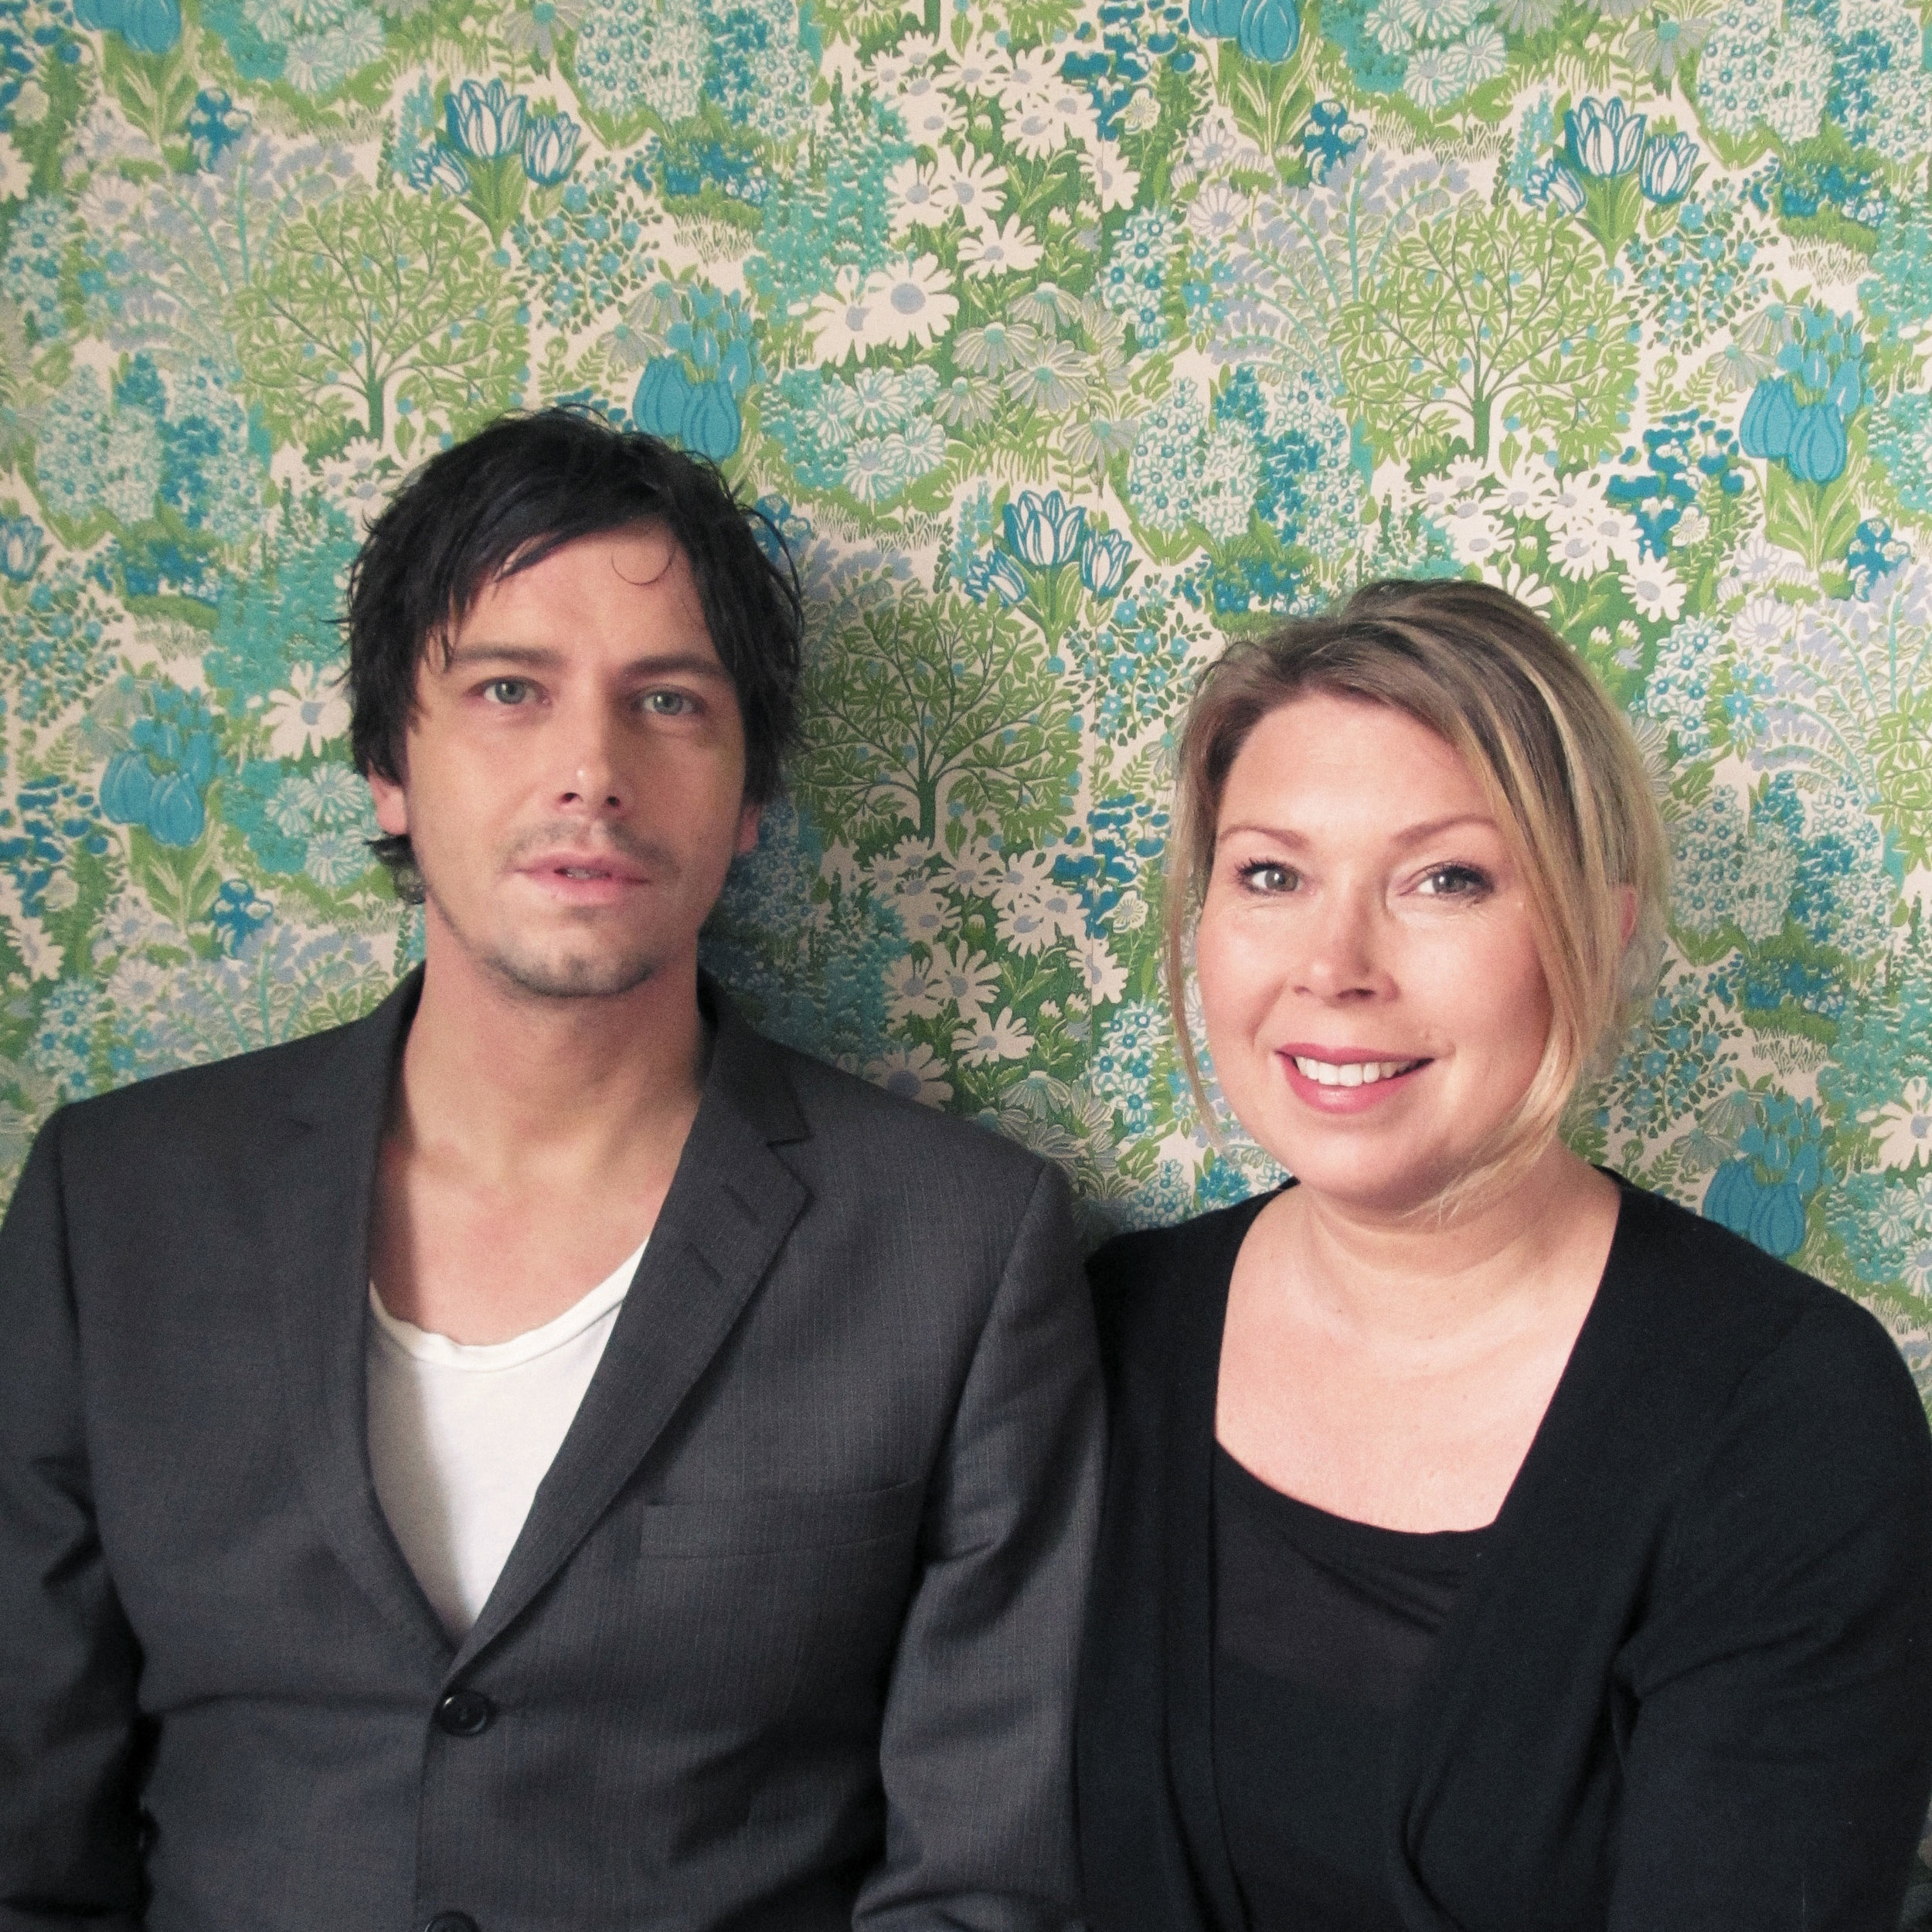 MARKUs and cecilia - A creative duo from Sweden with over 20 years international experience. More info.